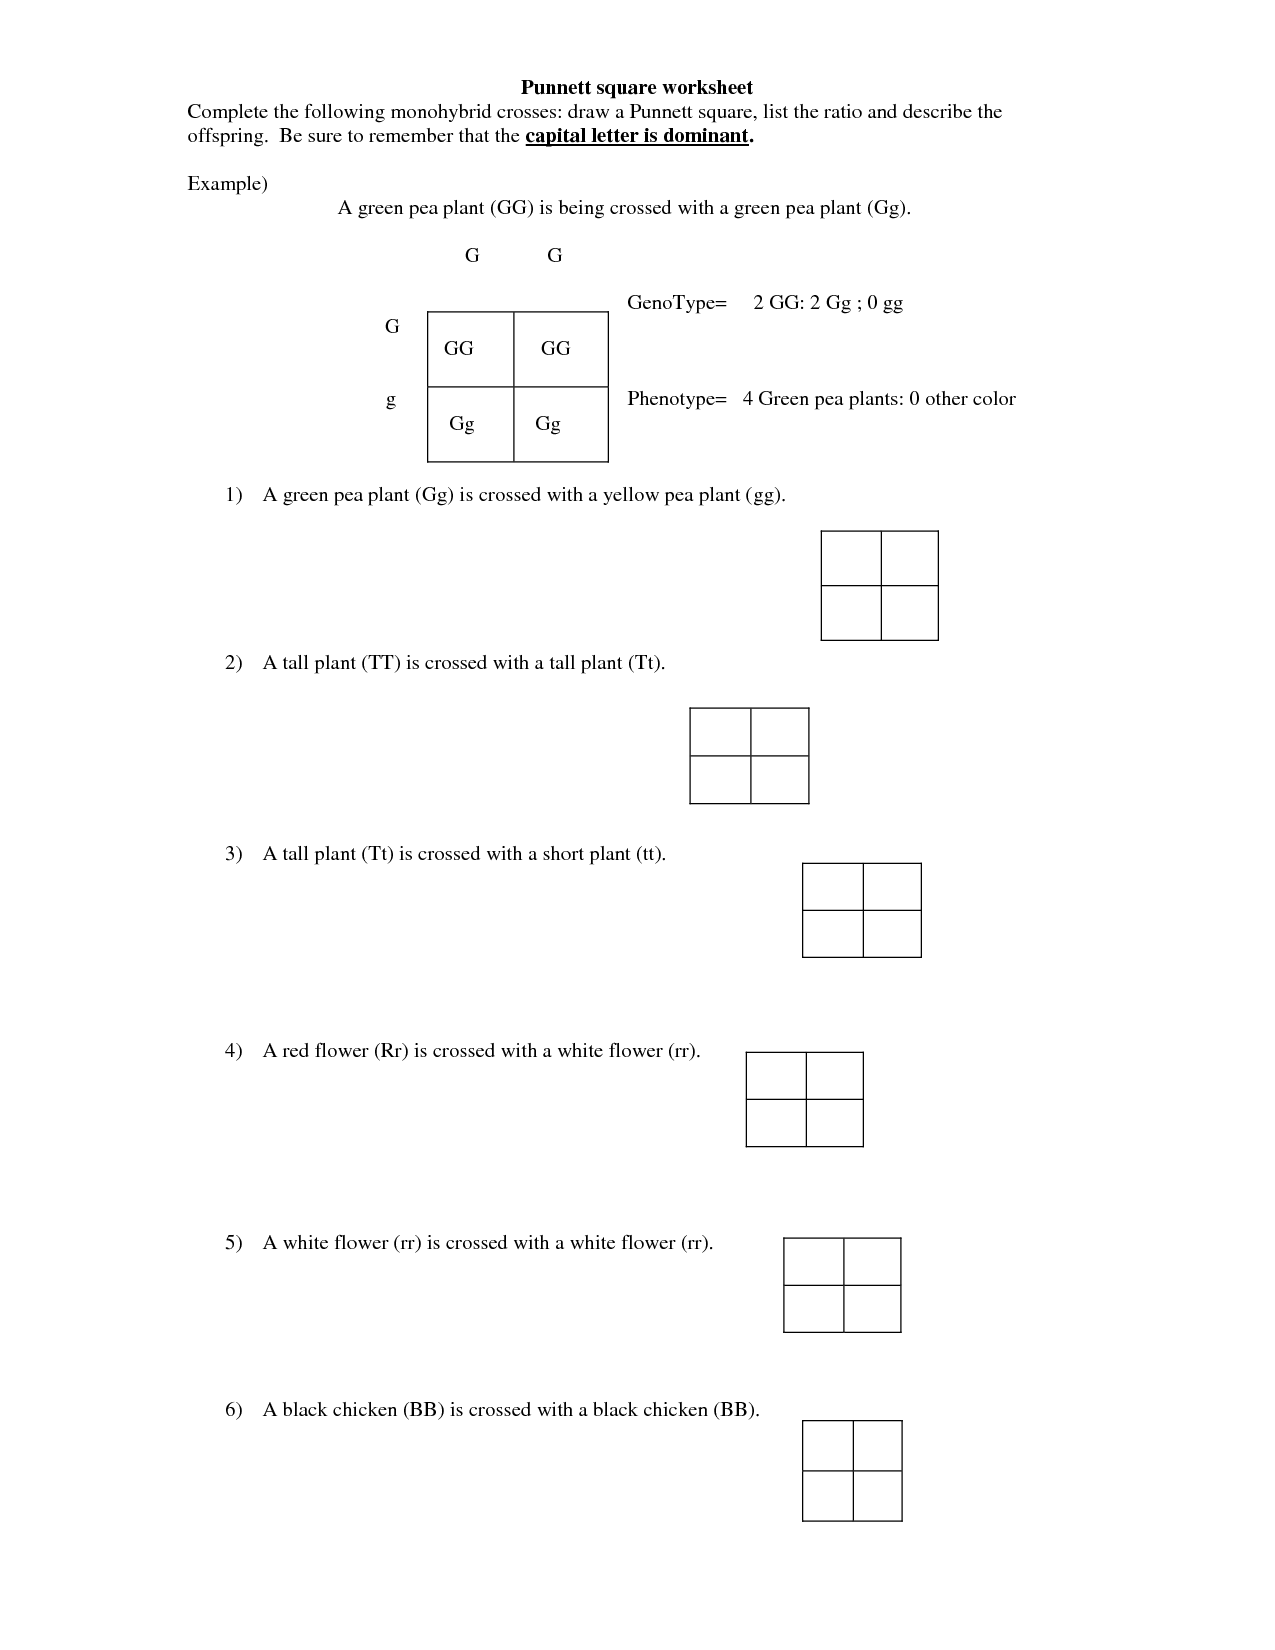 Worksheets Genetics Problems Worksheet worksheets on monohybrid cross google search classroom search